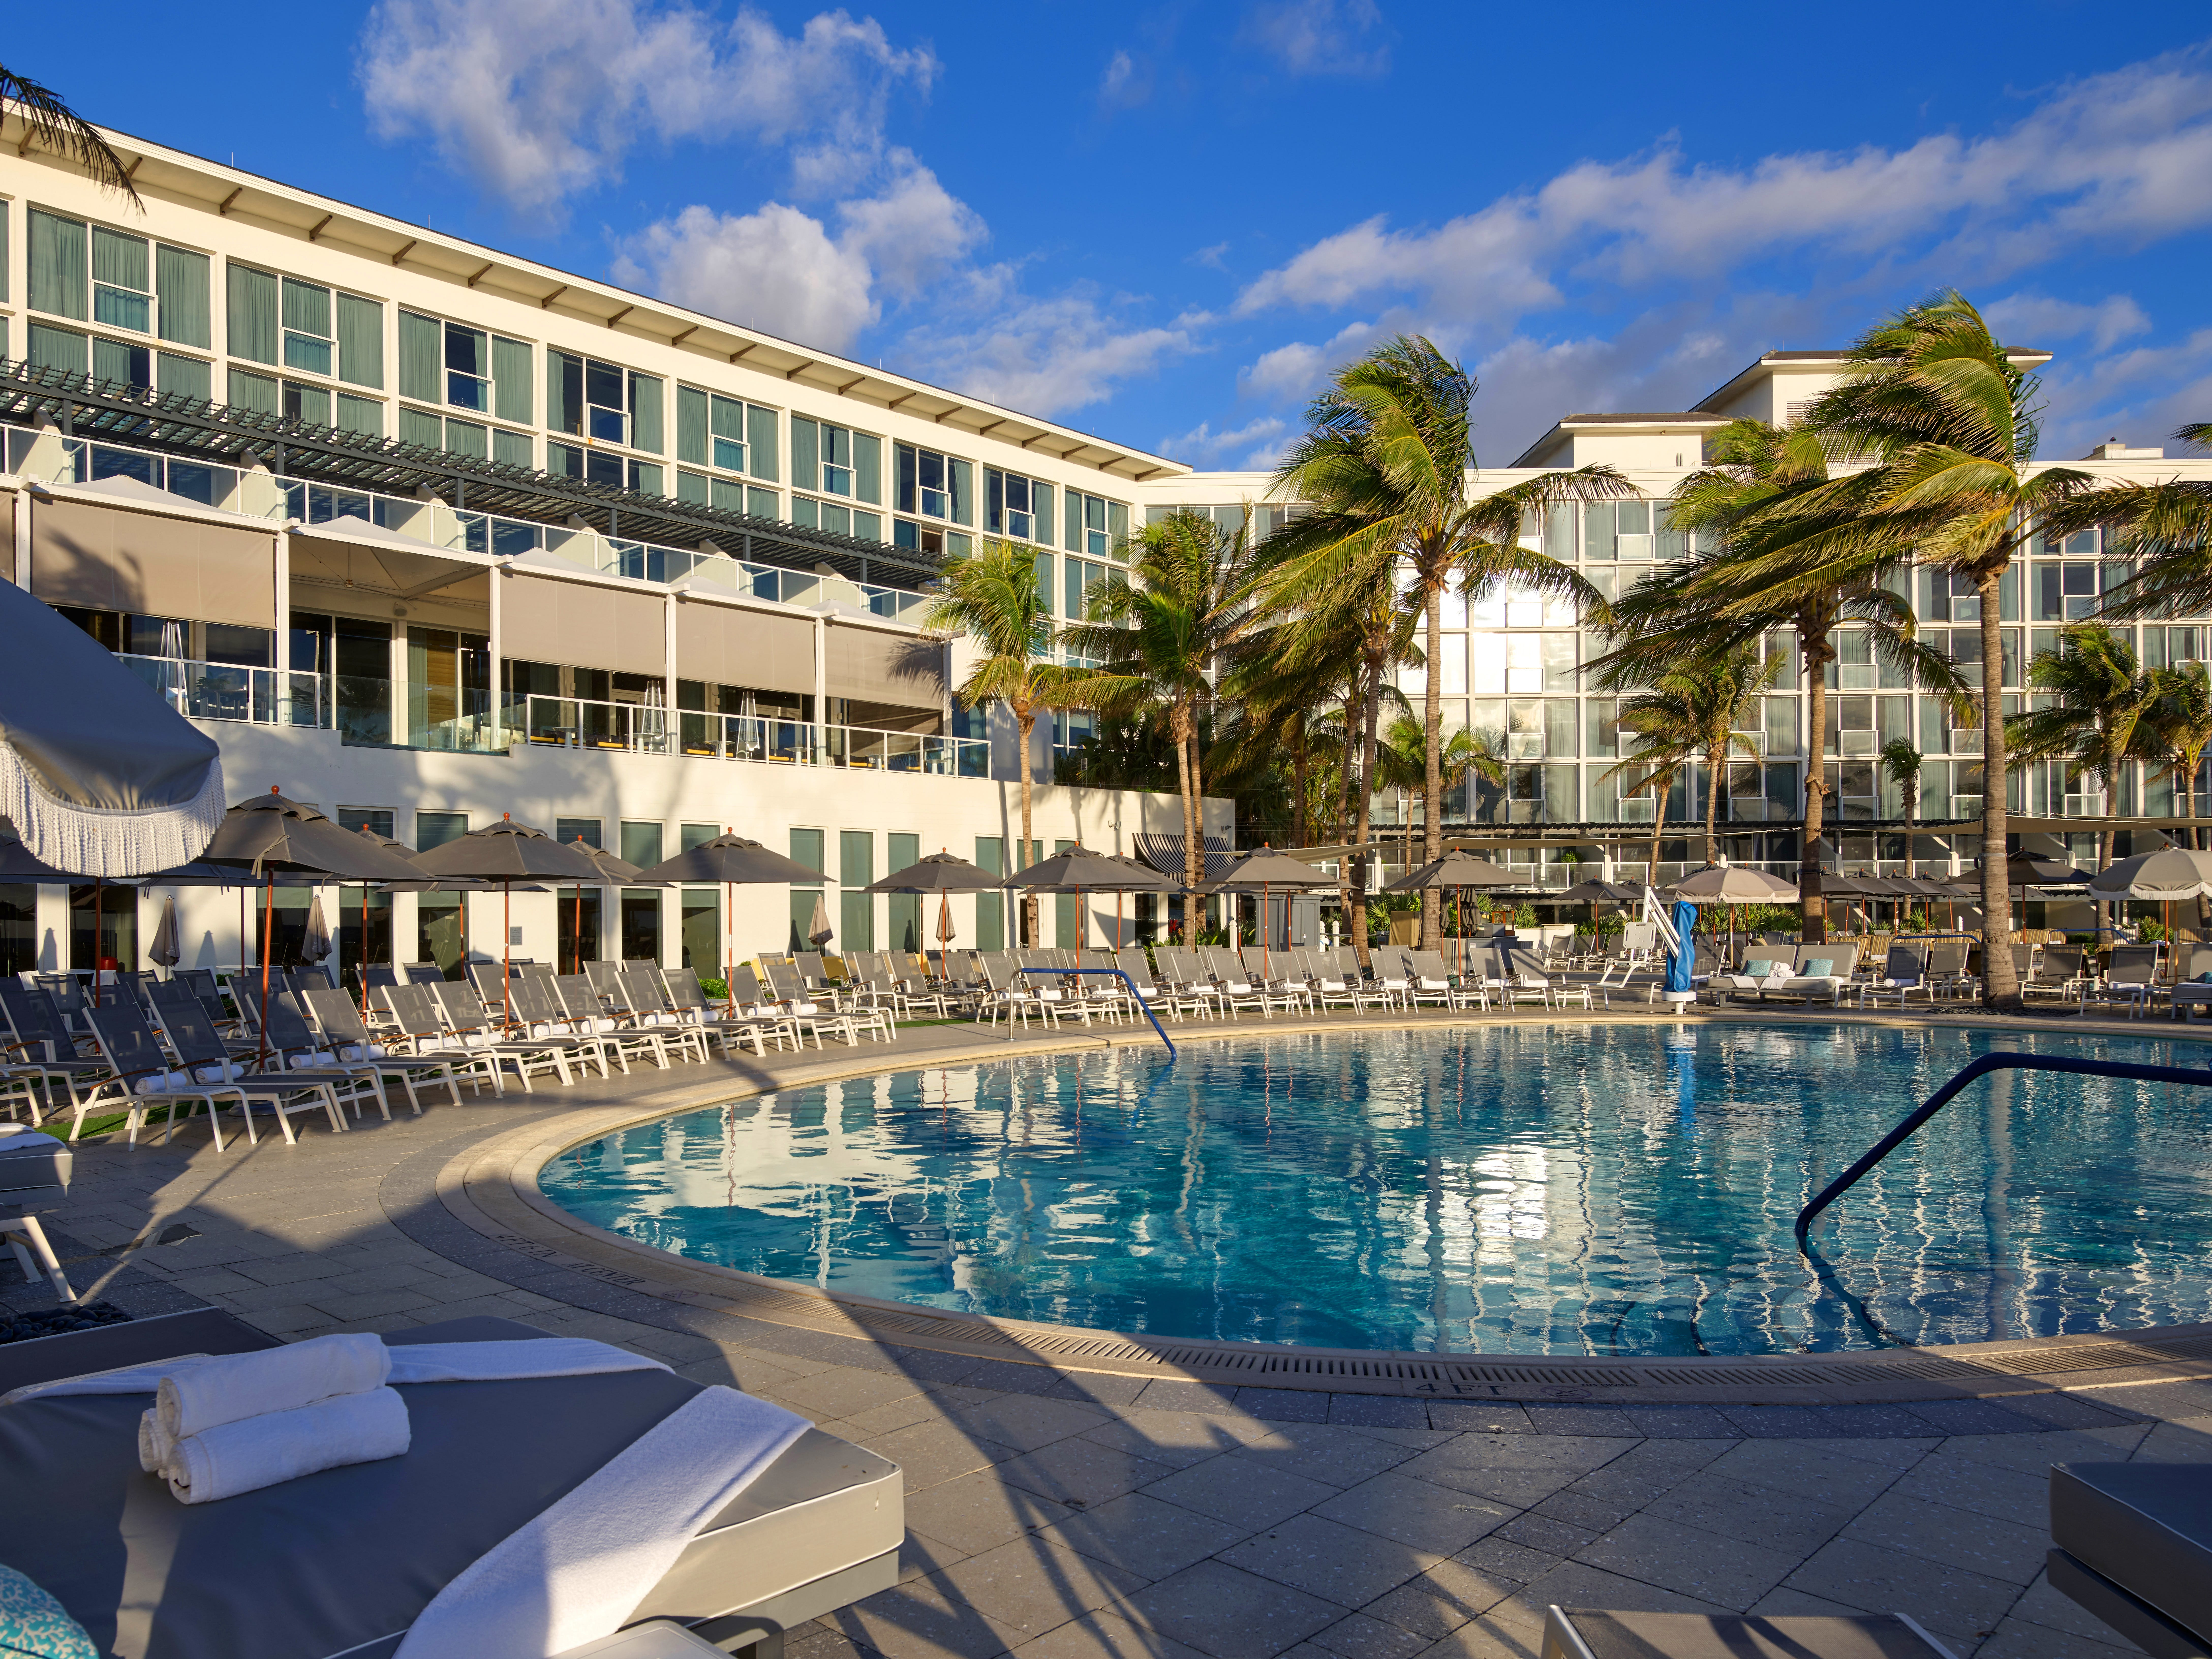 Guest rooms at Boca Beach Club overlook one of the pools as well as the Atlantic Ocean.